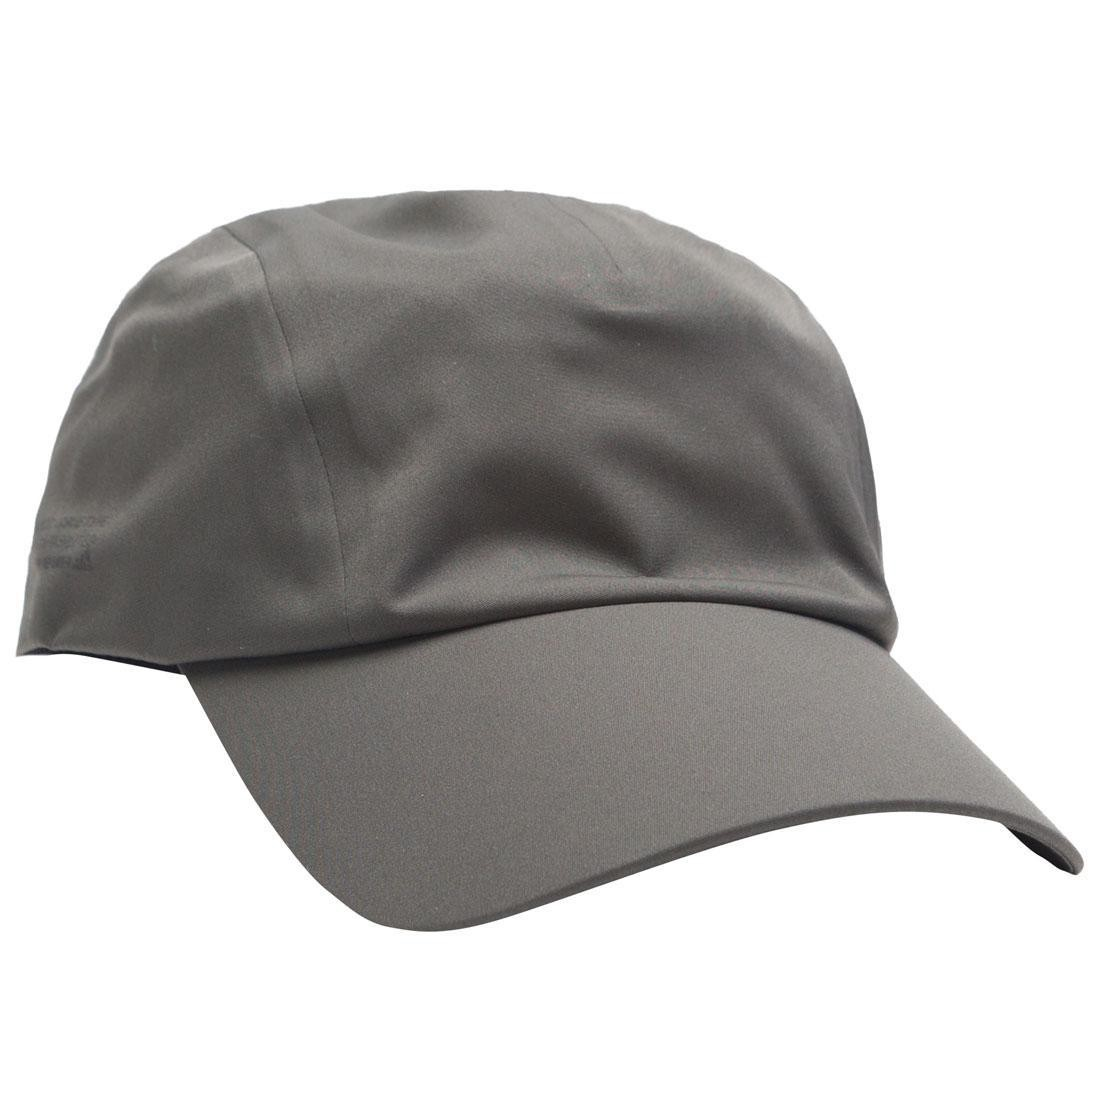 Adidas x Undefeated Running Hat gray cinder utility black 275f1a3c639